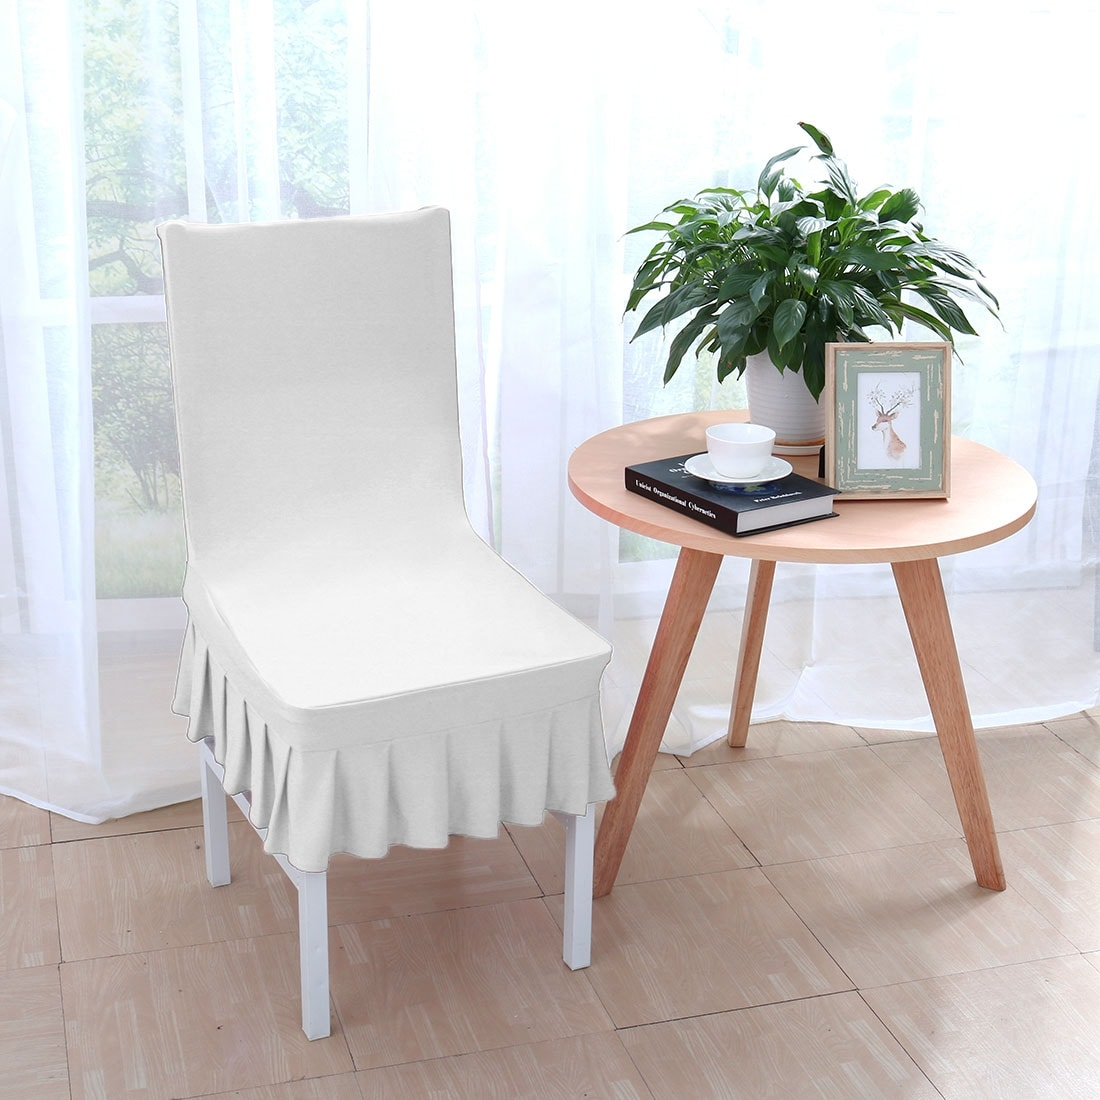 chair covers for dining room ergonomic desk shop christmas stretchy thicken plush short seat protector slipcover